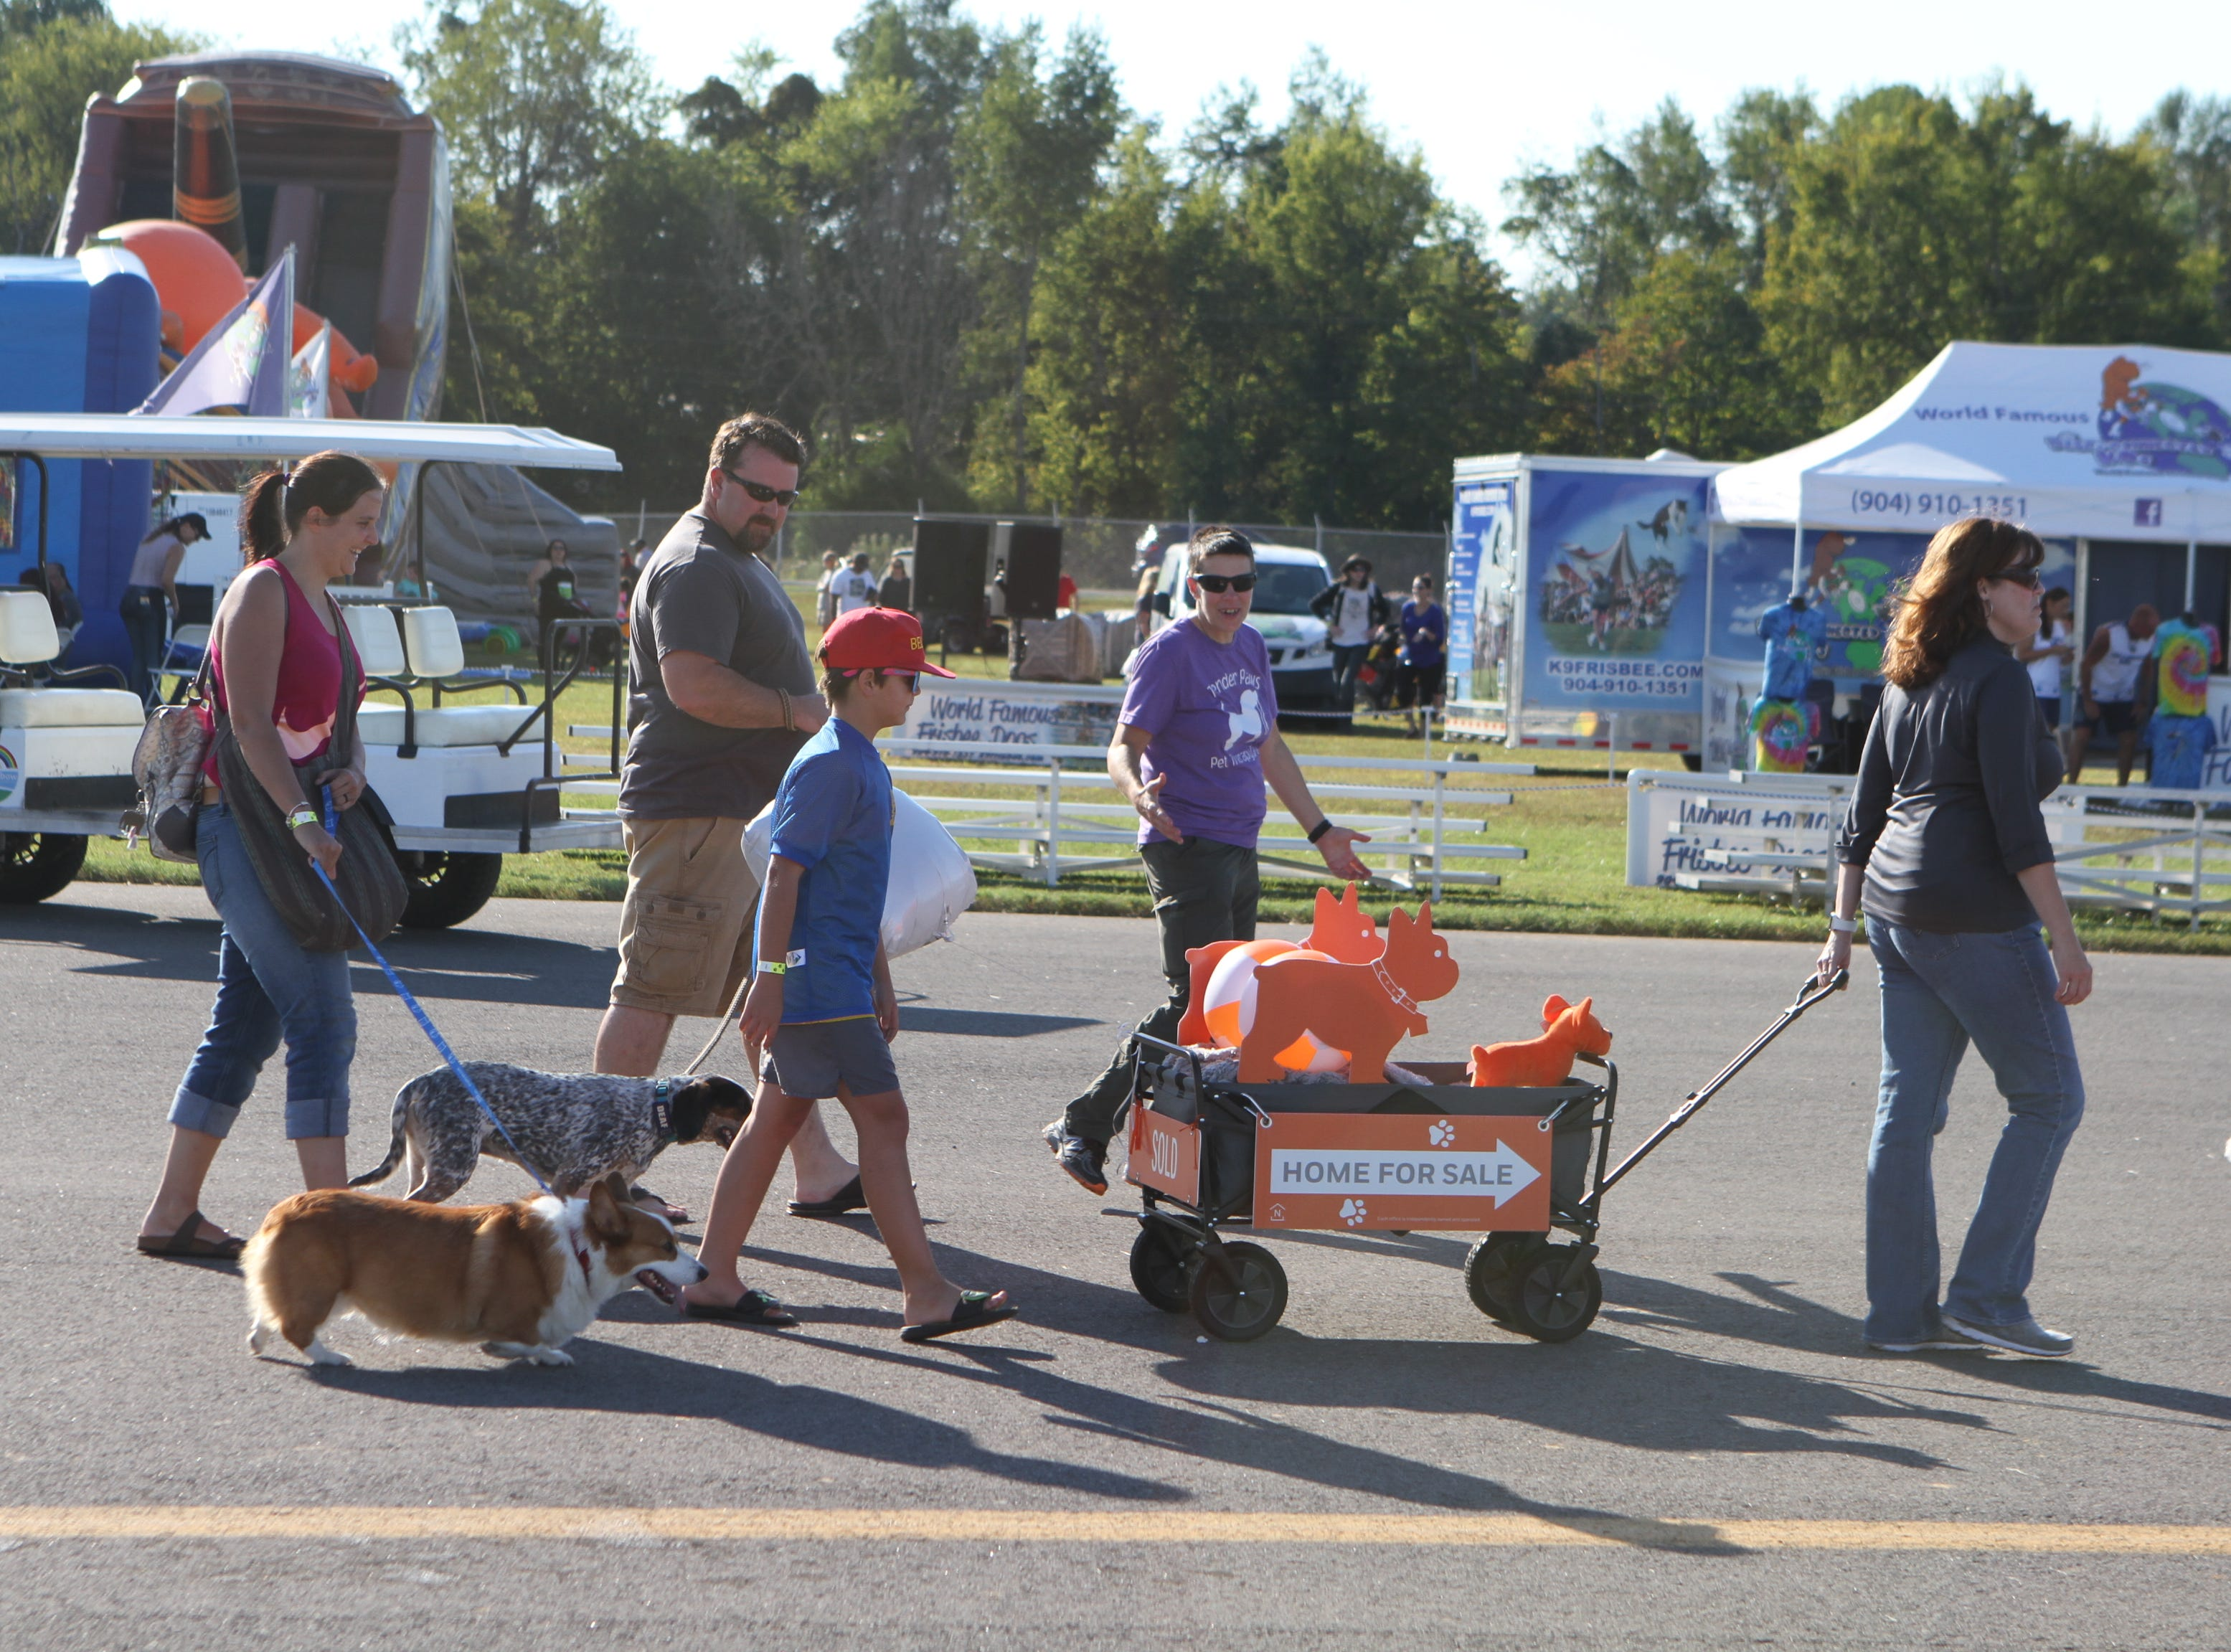 Wags and Wings, a family fun and Oktoberfest event to benefit the Humane Society of Clarksville-Montgomery County, was presented by Fortera Credit Union Saturday, Sept. 29, 2018.